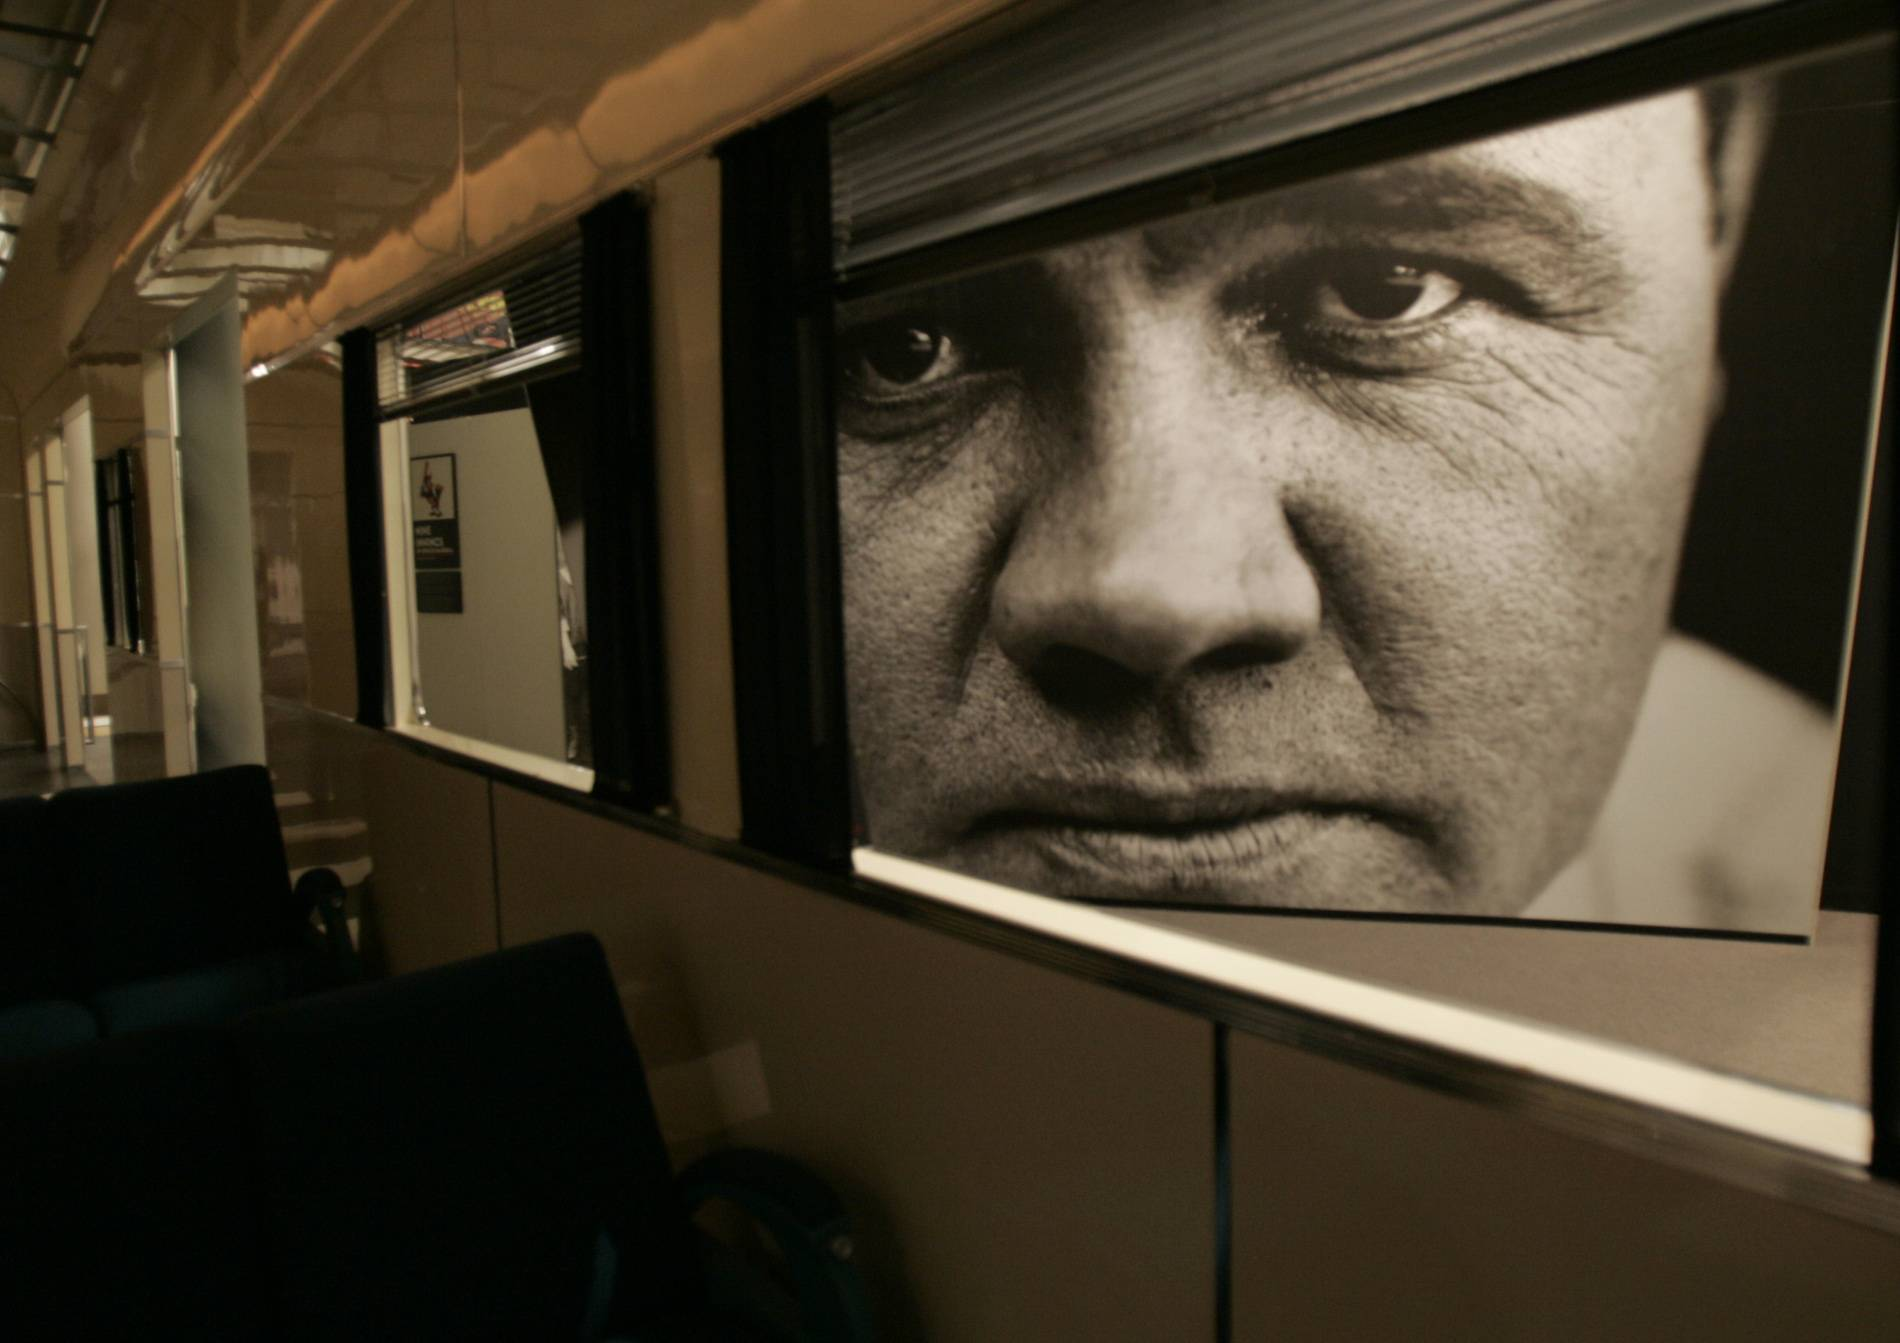 A large photograph of Babe Ruth was part of an exhibit at the Sports Legends at Camden Yards museum in Baltimore.